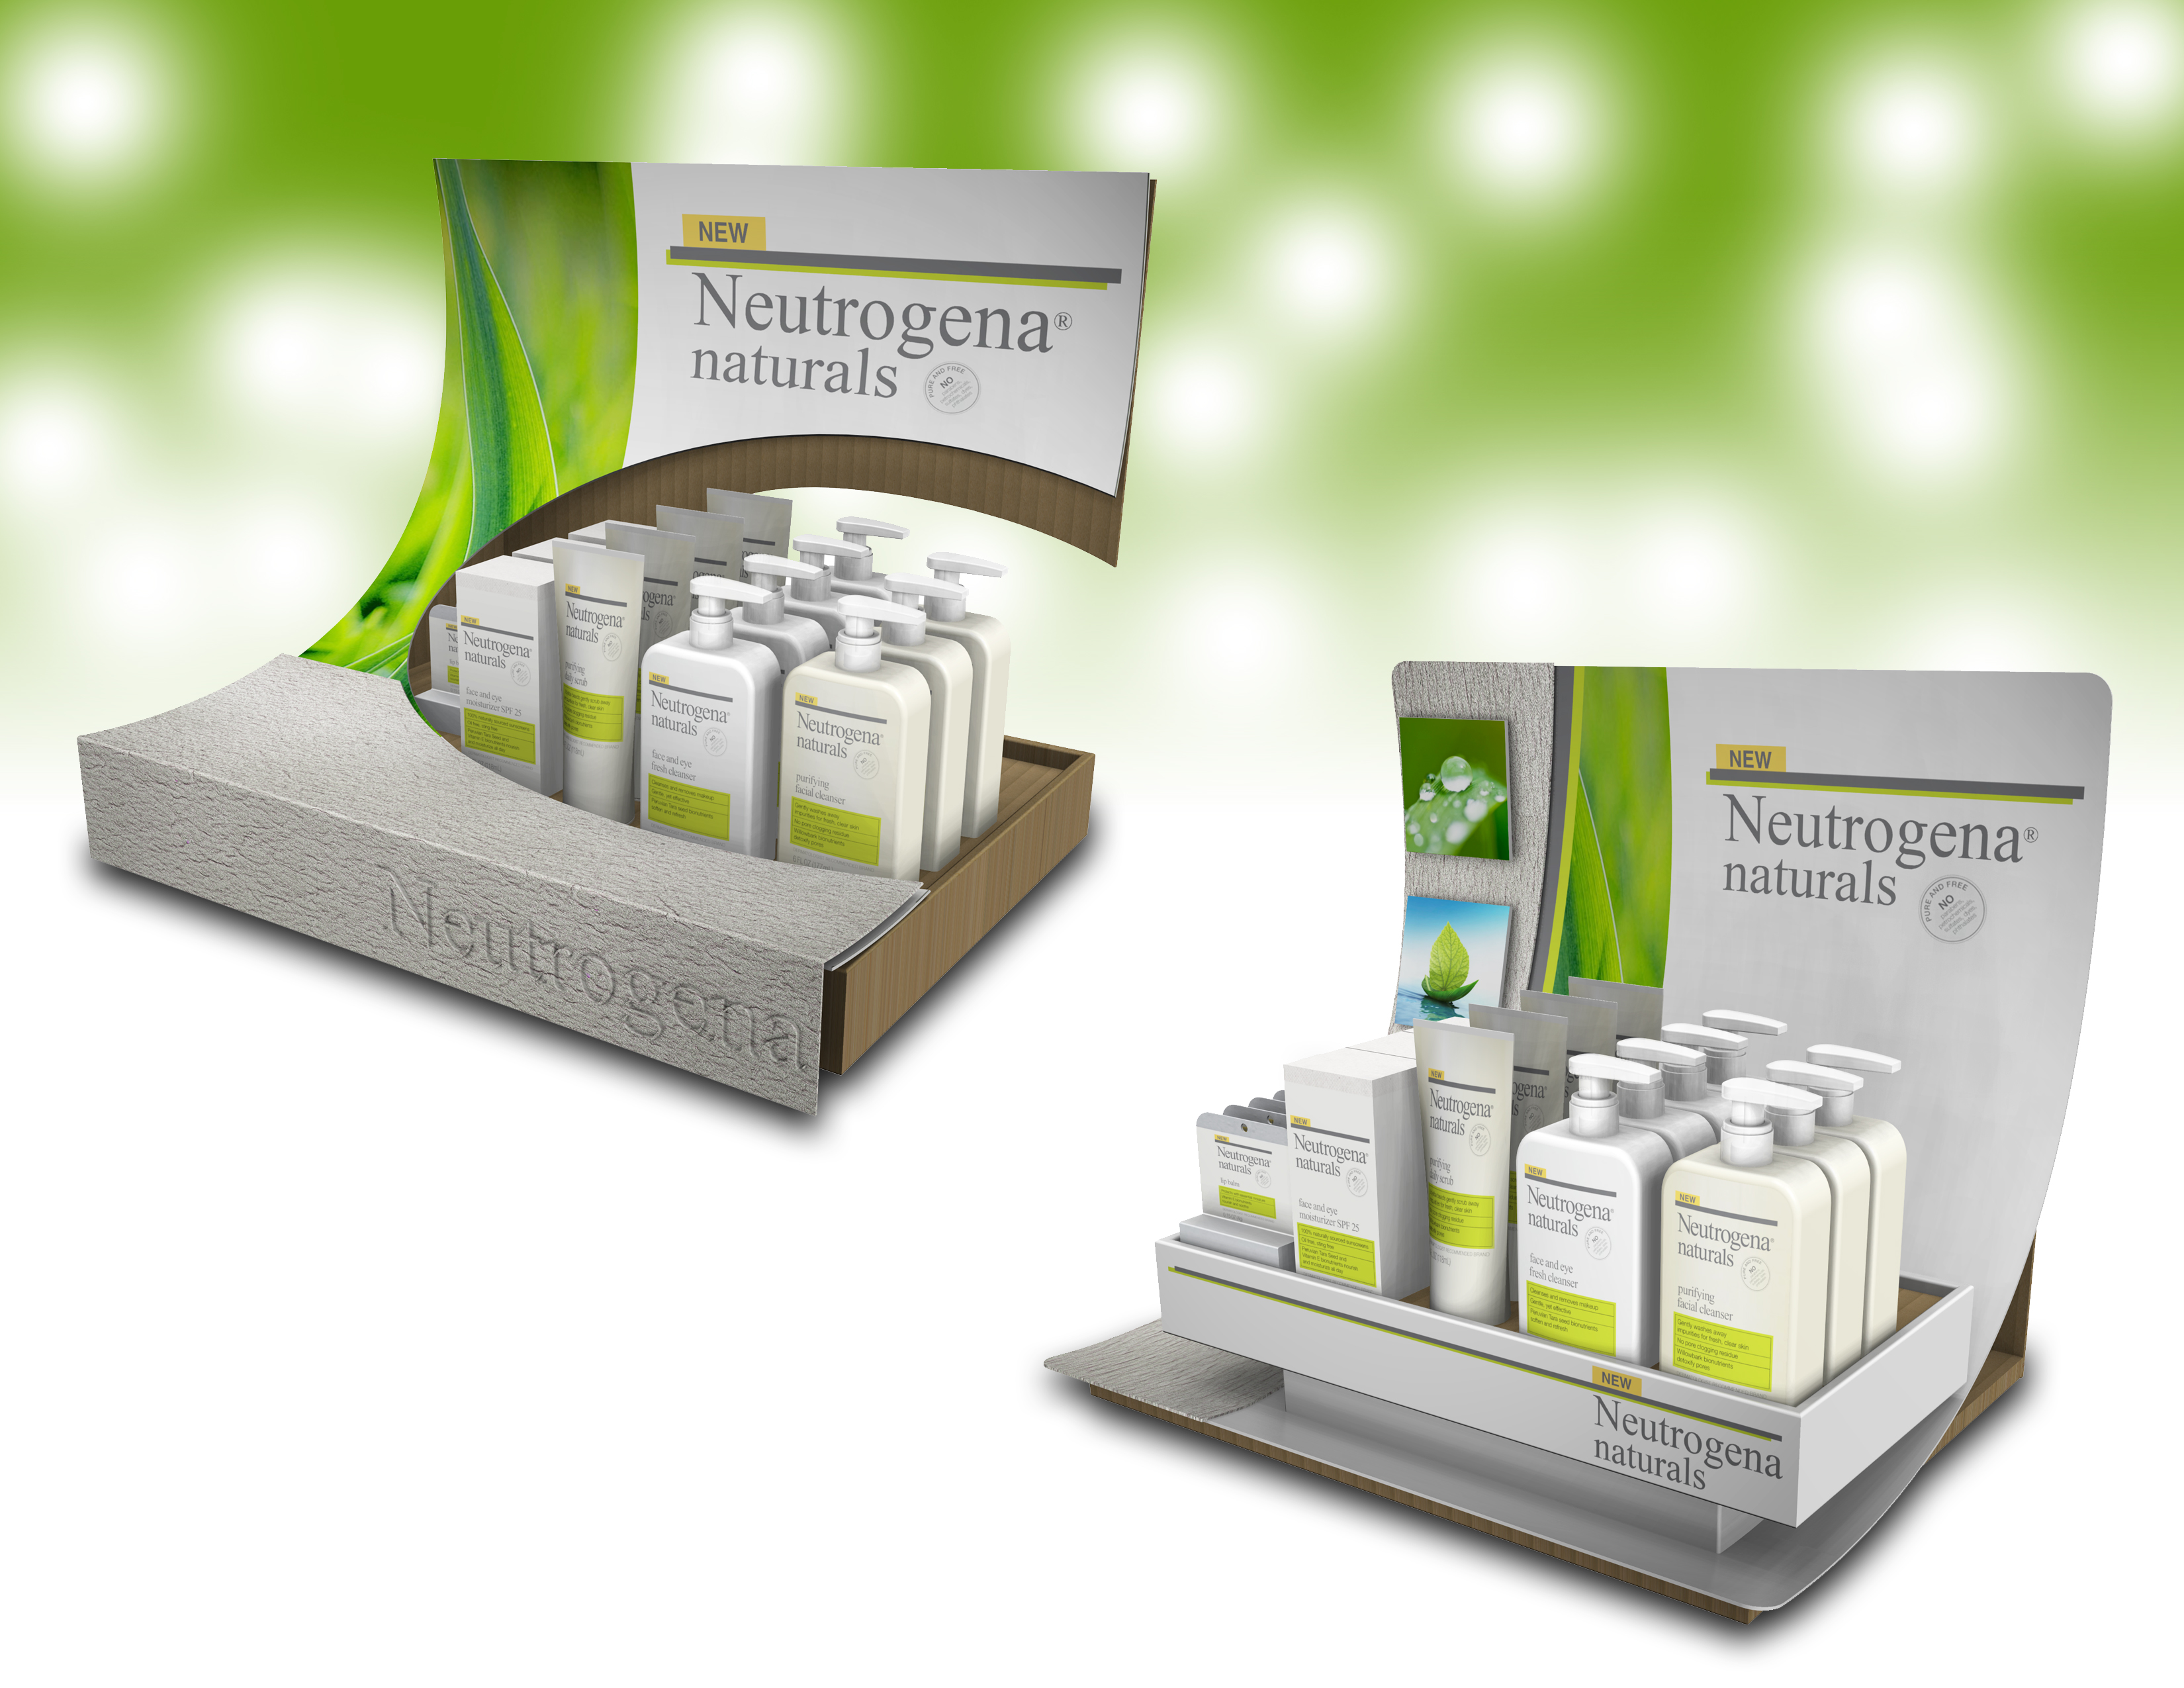 Neutrogena Naturals Launch Displays By Chad Buske At